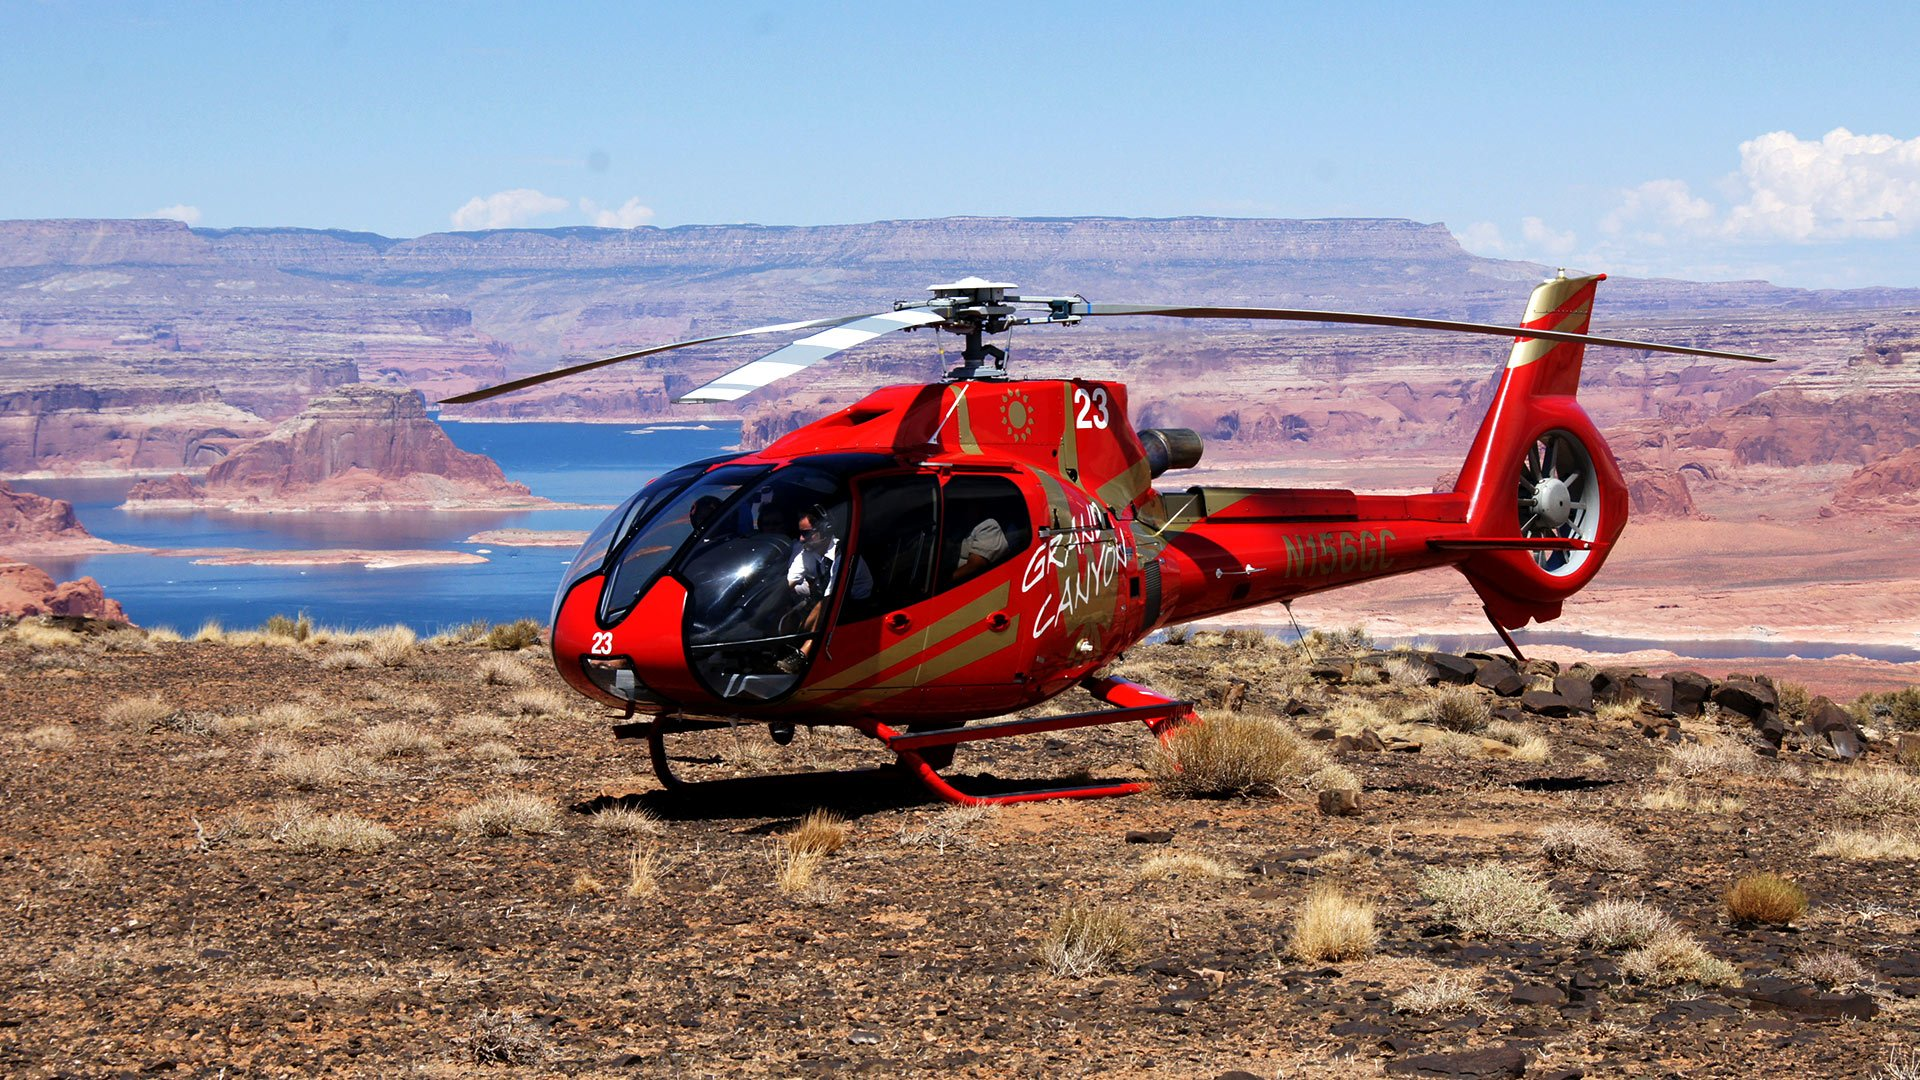 EC-130 landed atop Tower Butte with Lake Powell in the background. Page, AZ Helicopter Tours